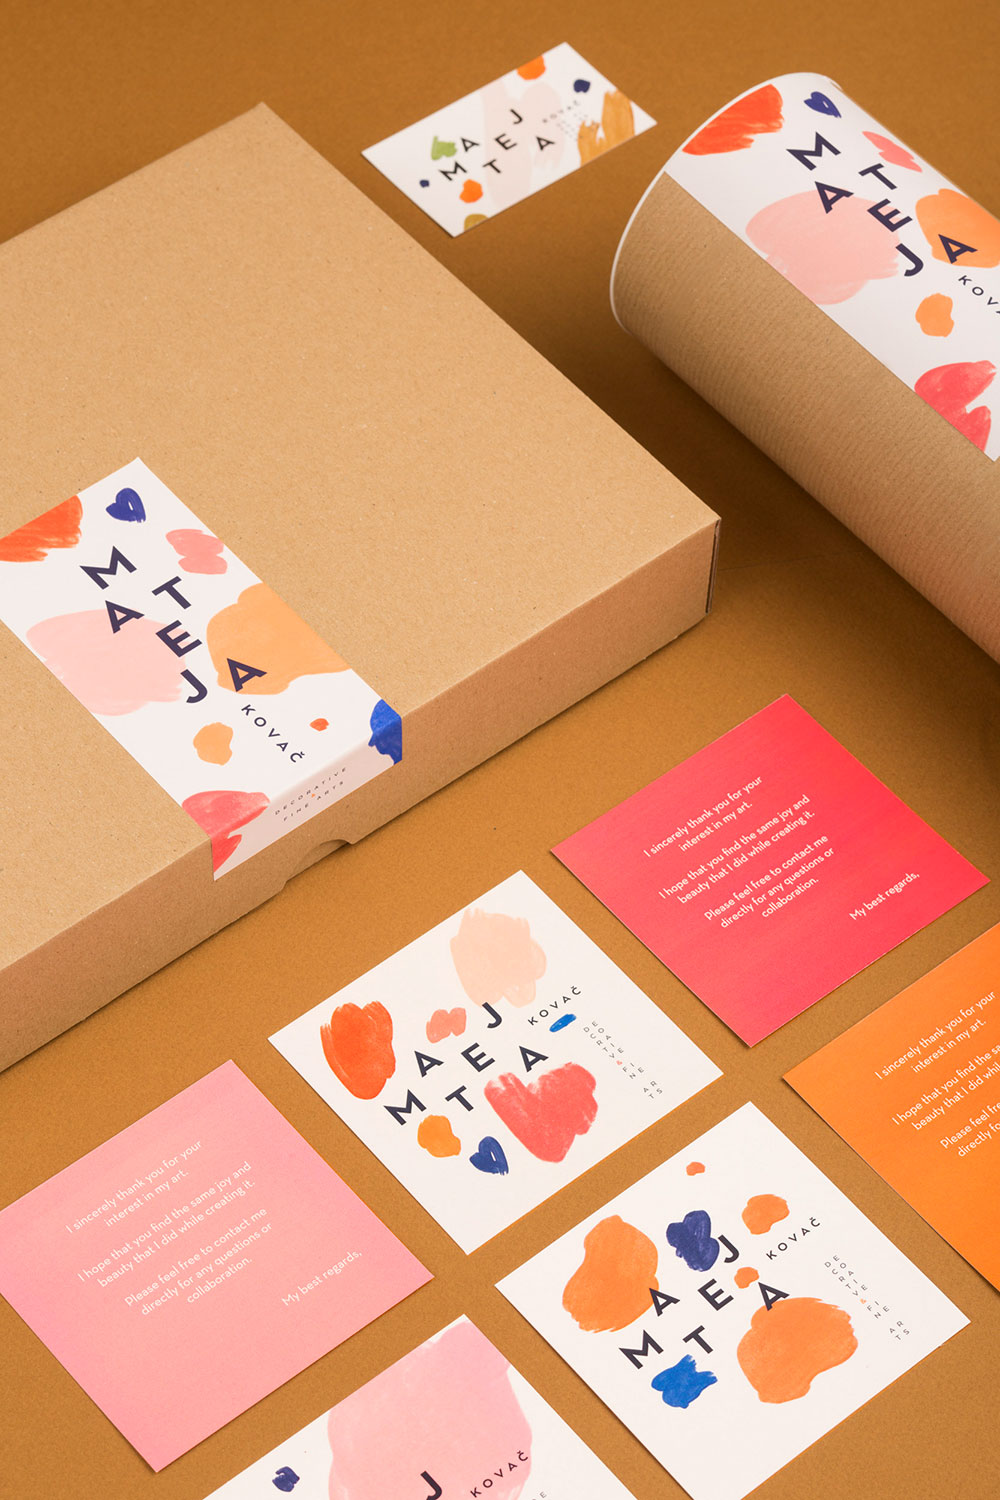 The hand illustrated element to this branding is fantastic, it feels authentic and natural. The type lockup is playful and a nice bold contrast against the softer background.